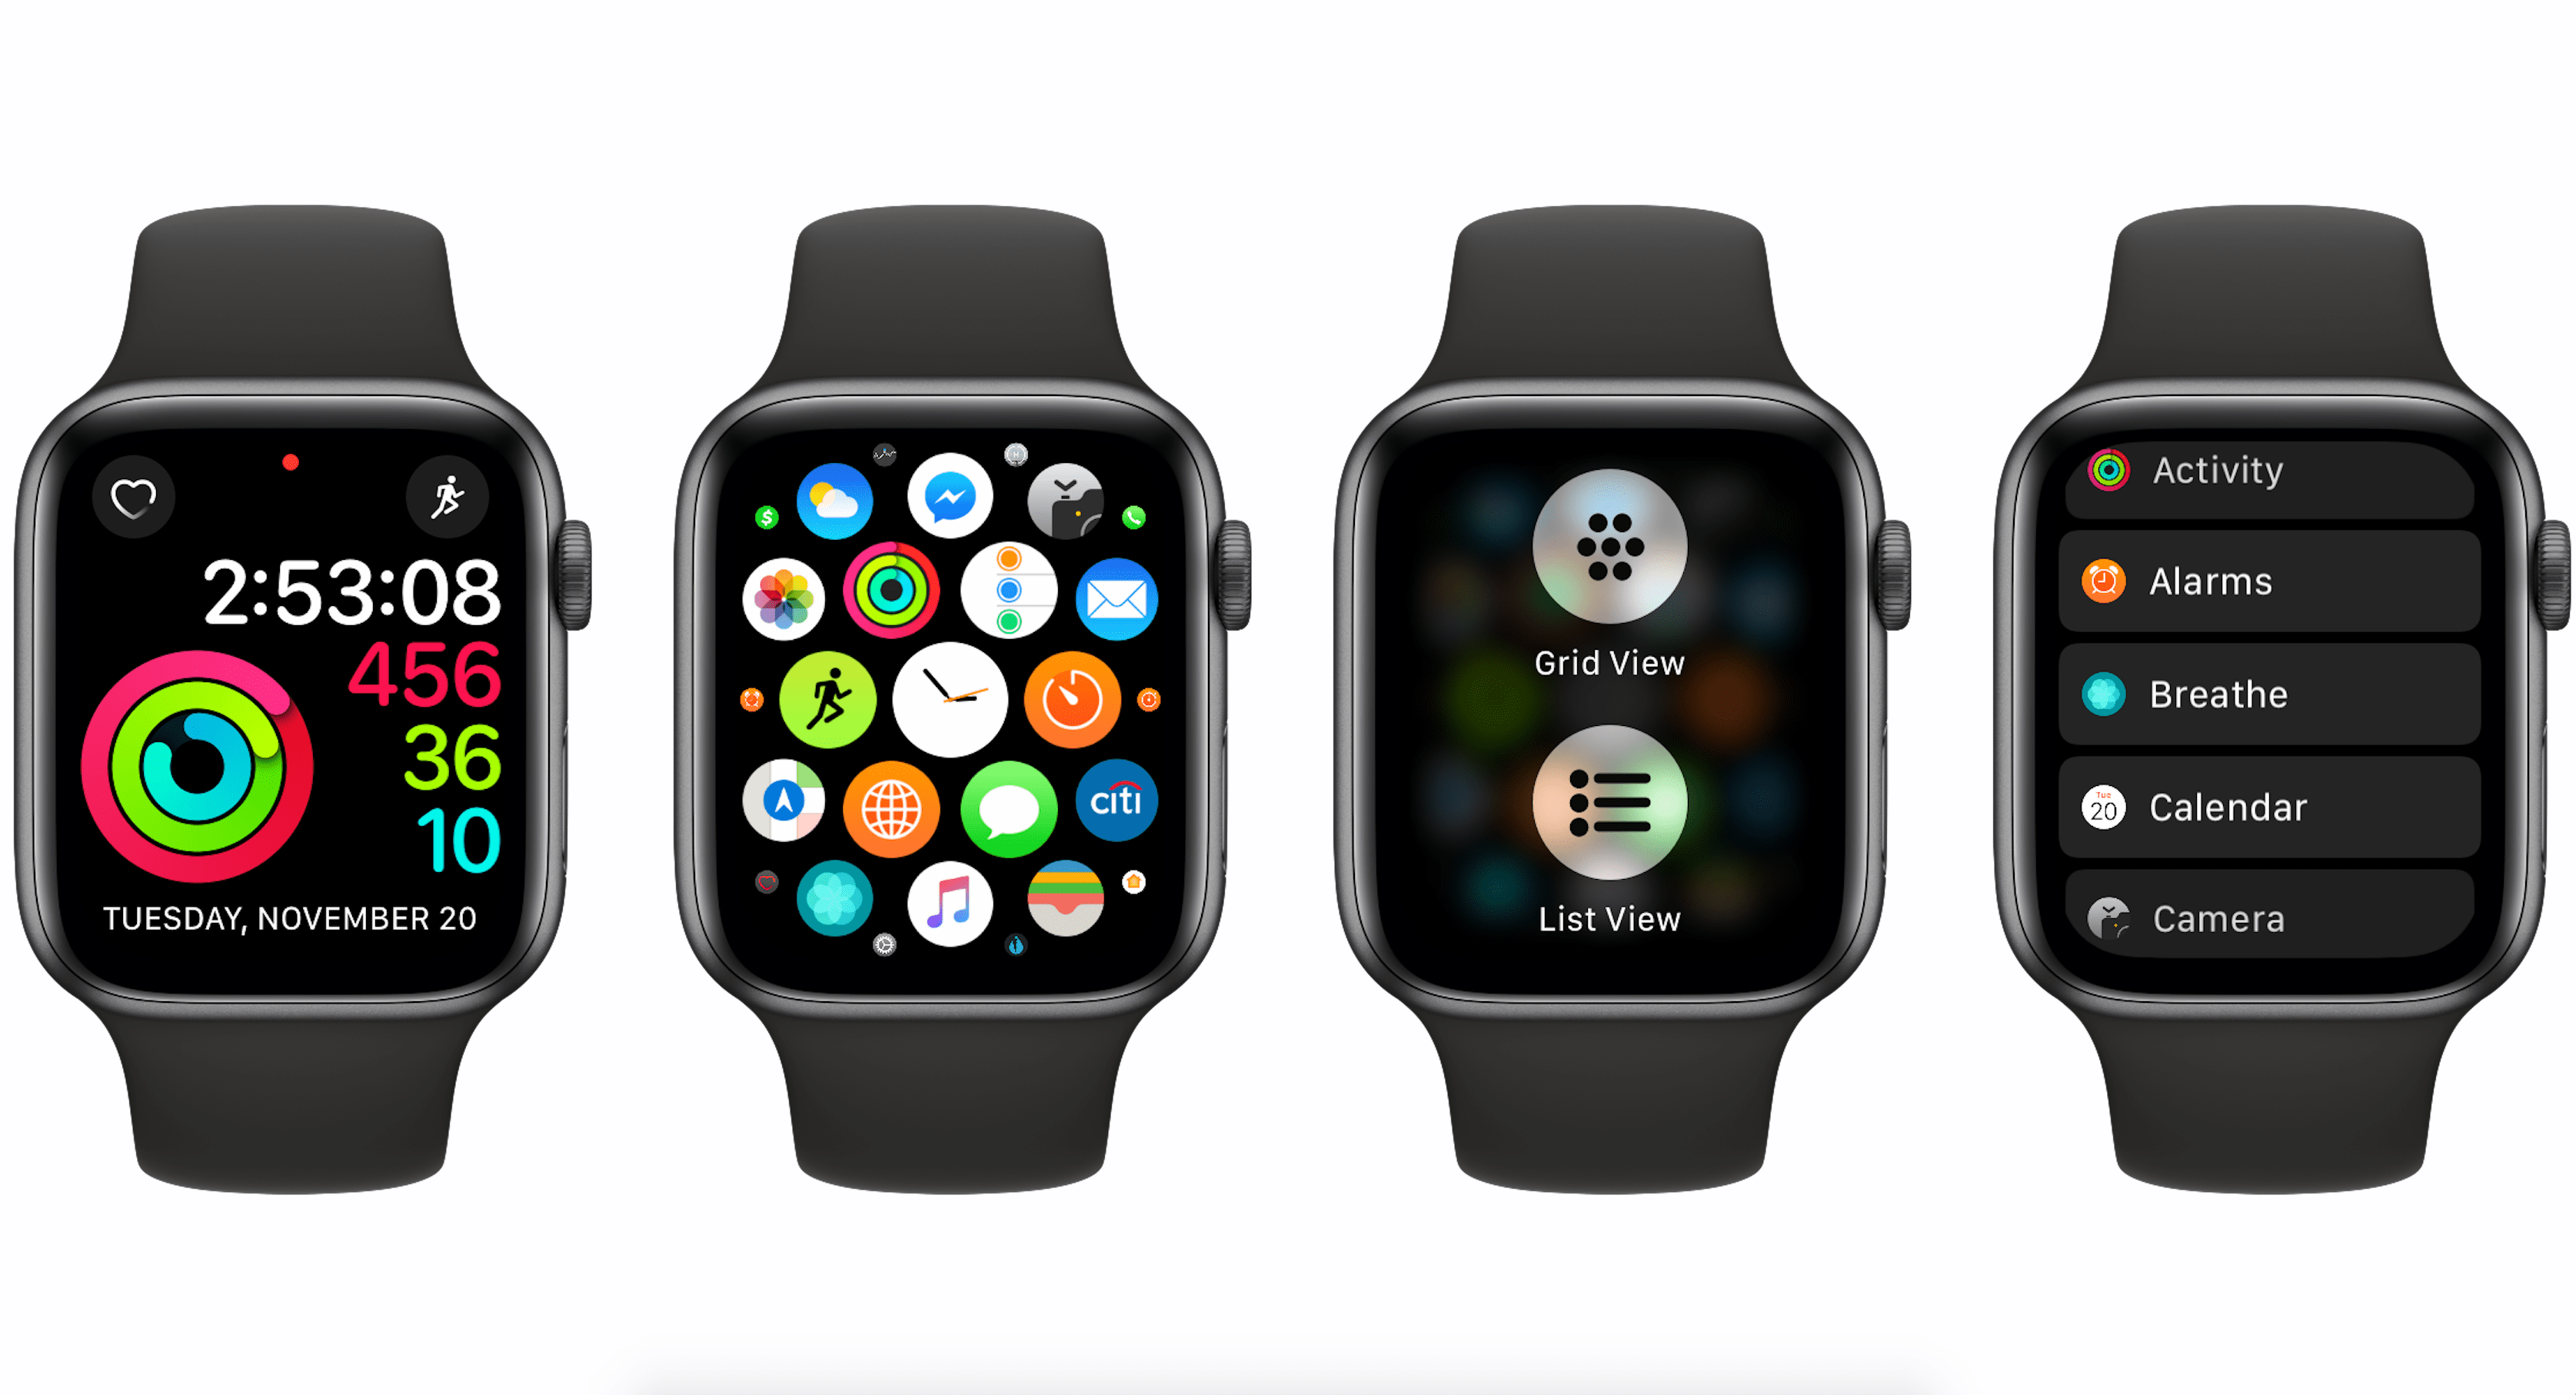 grid view on apple watch with watchos